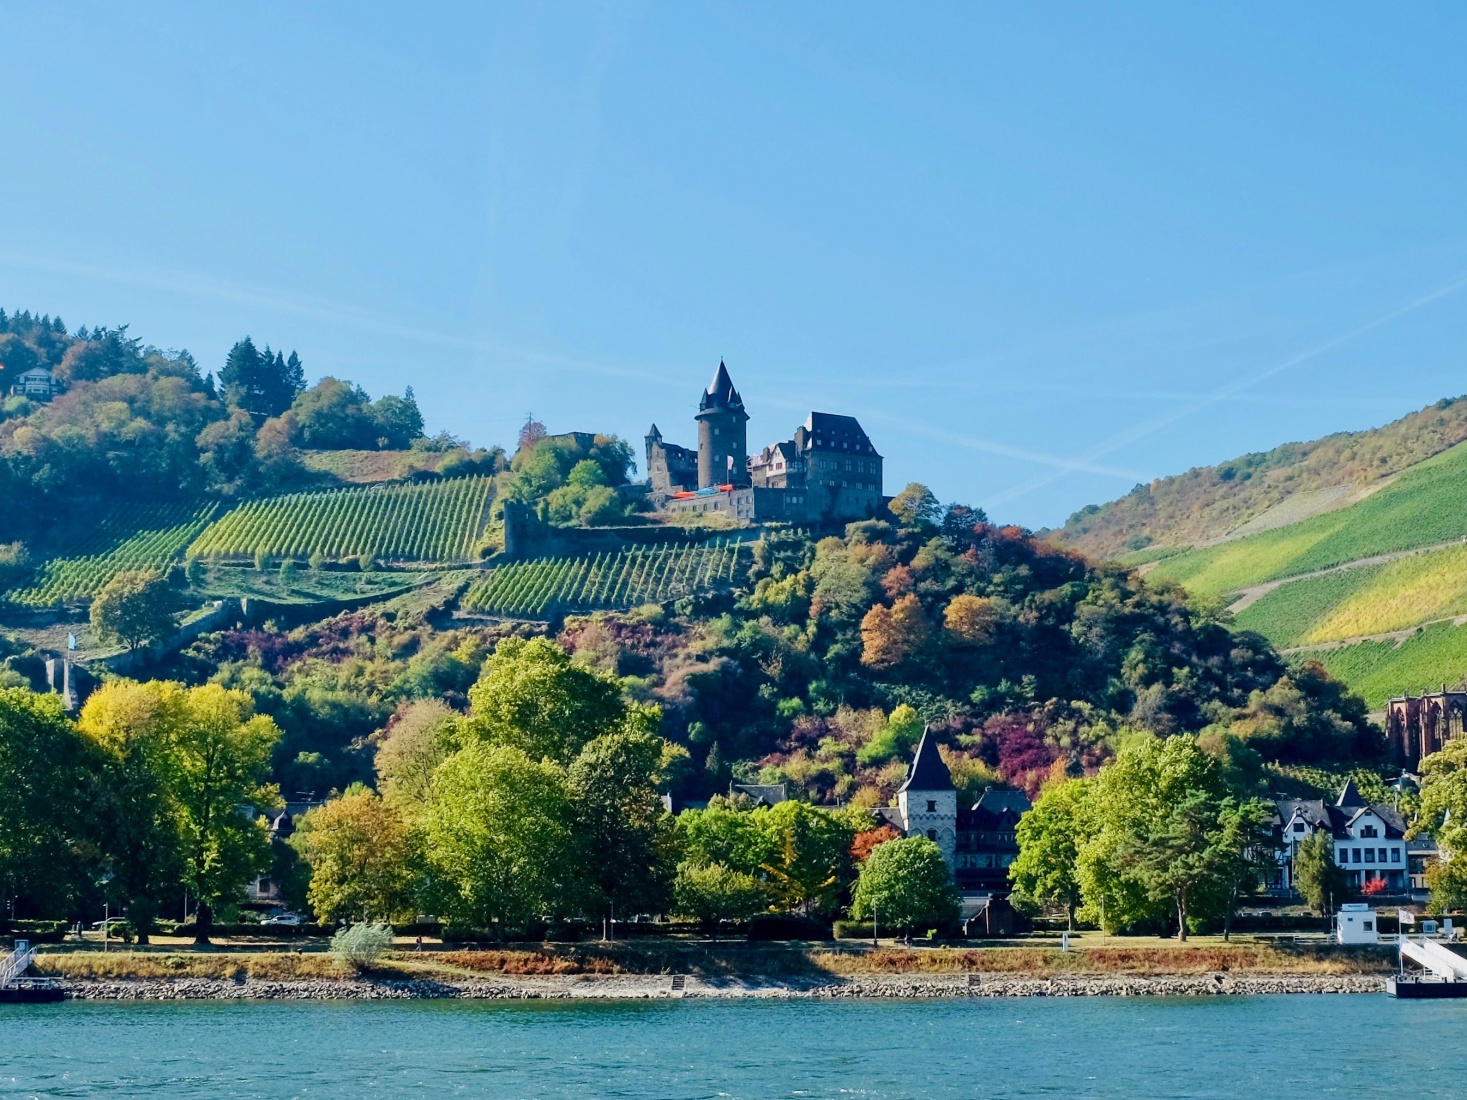 The Upper Middle Rhein Valley, UNESCO Heritage site with dozens of abandoned hilltop castles.